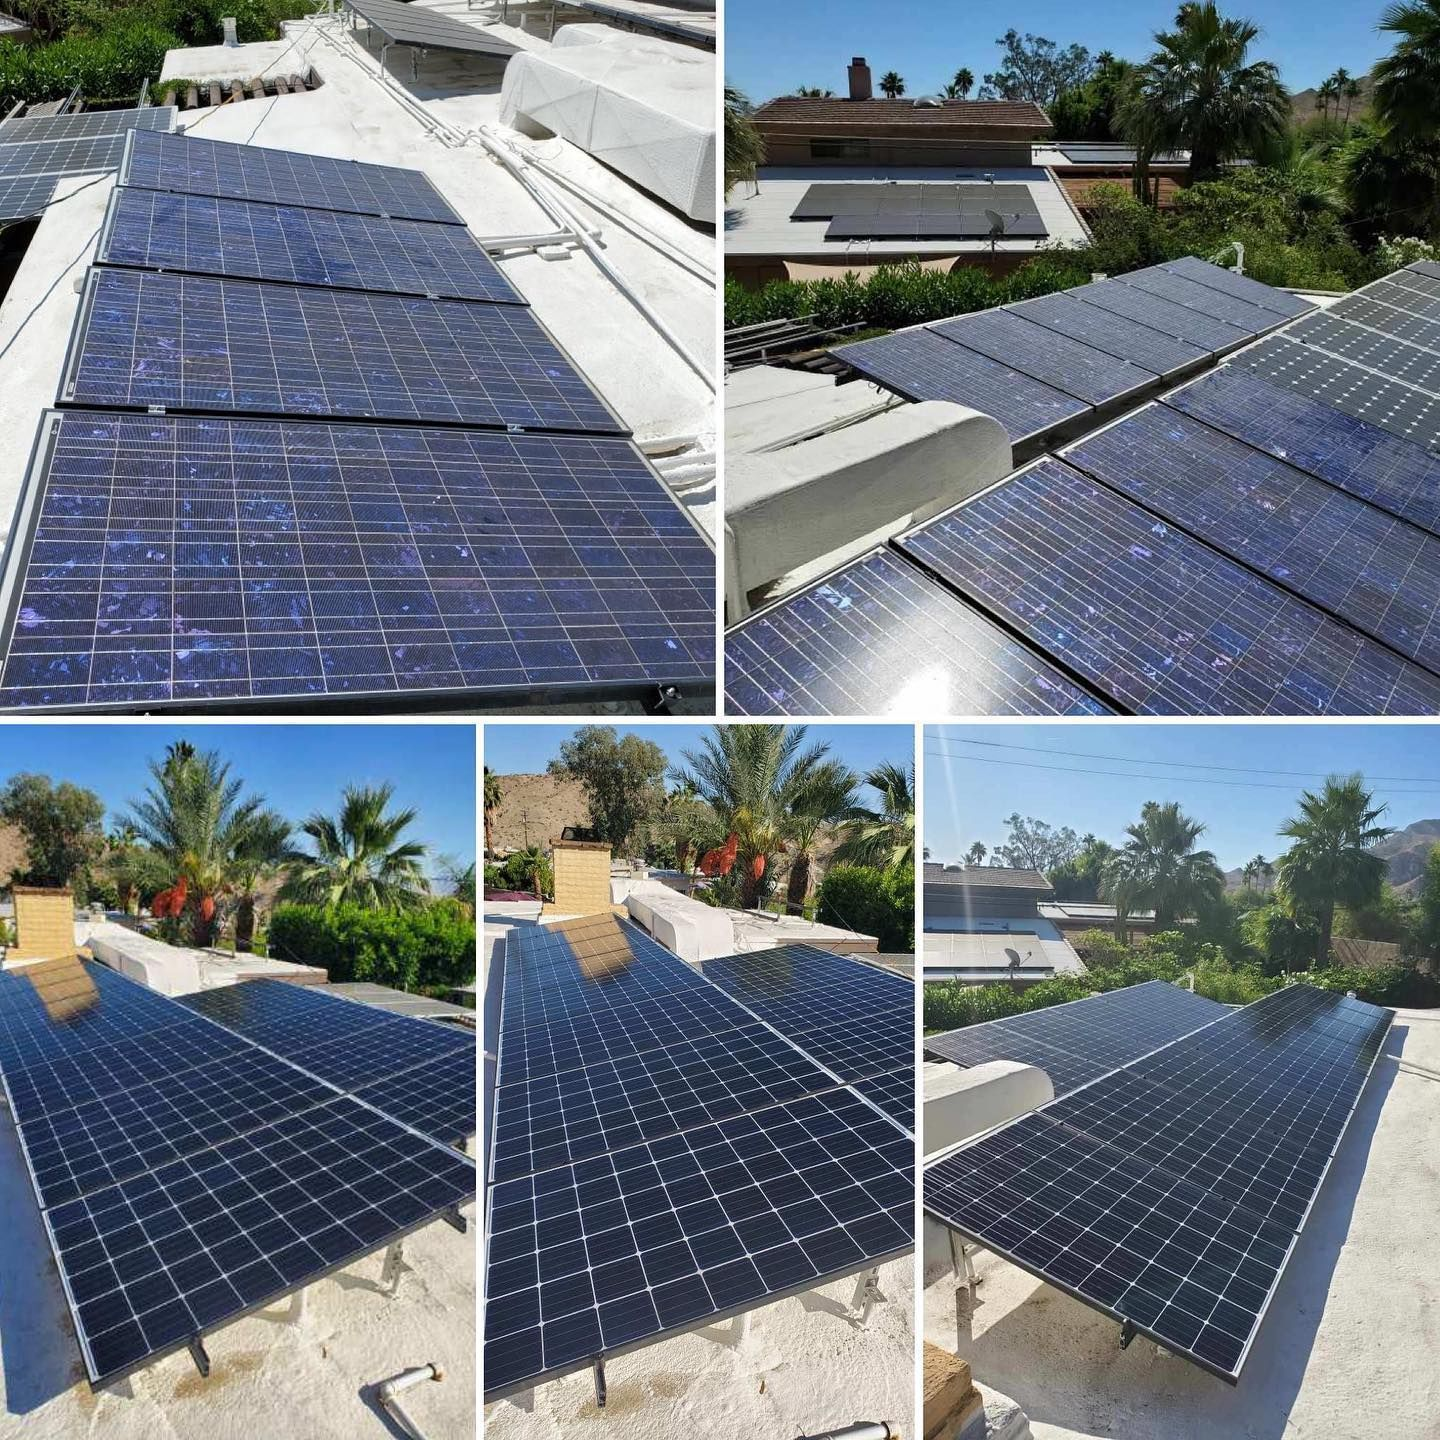 Solar Panel Replacement Before And After Removed 20 Installed 13 Done In 4 Hours Powerthatpaysforitself In 2020 Solar Panels Solar Roof Solar Panel